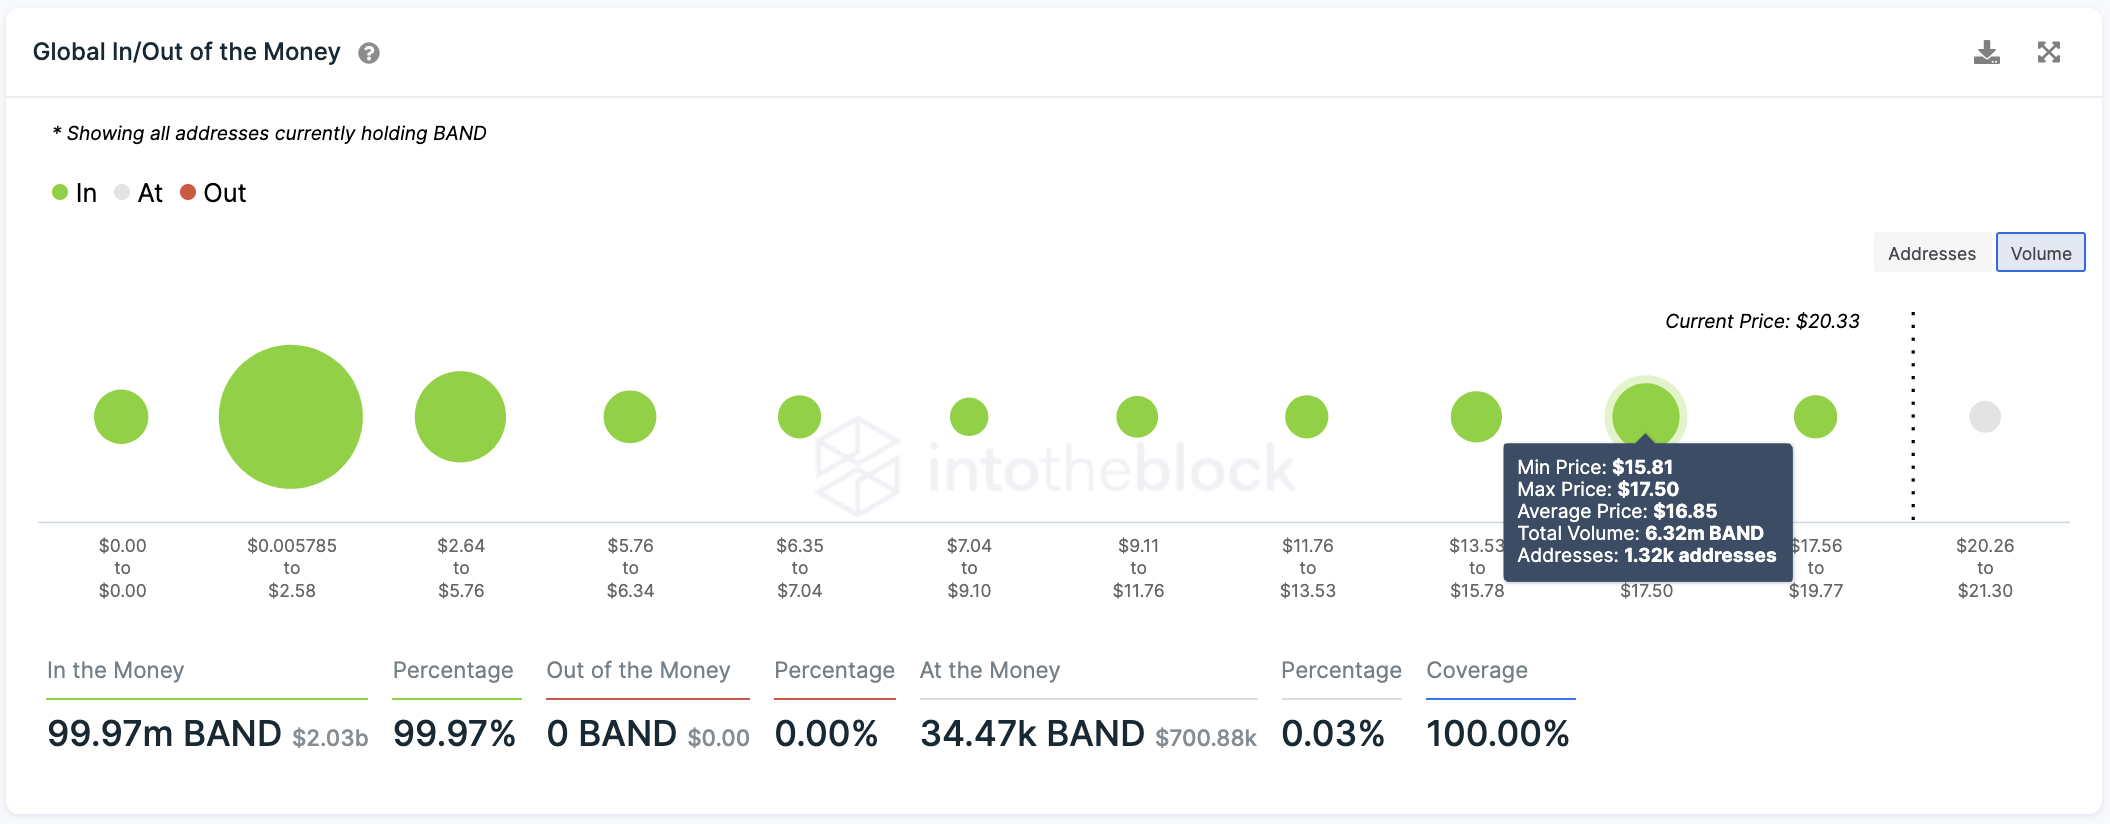 Band Protocol Global In/Out of the Money by IntoTheBlock